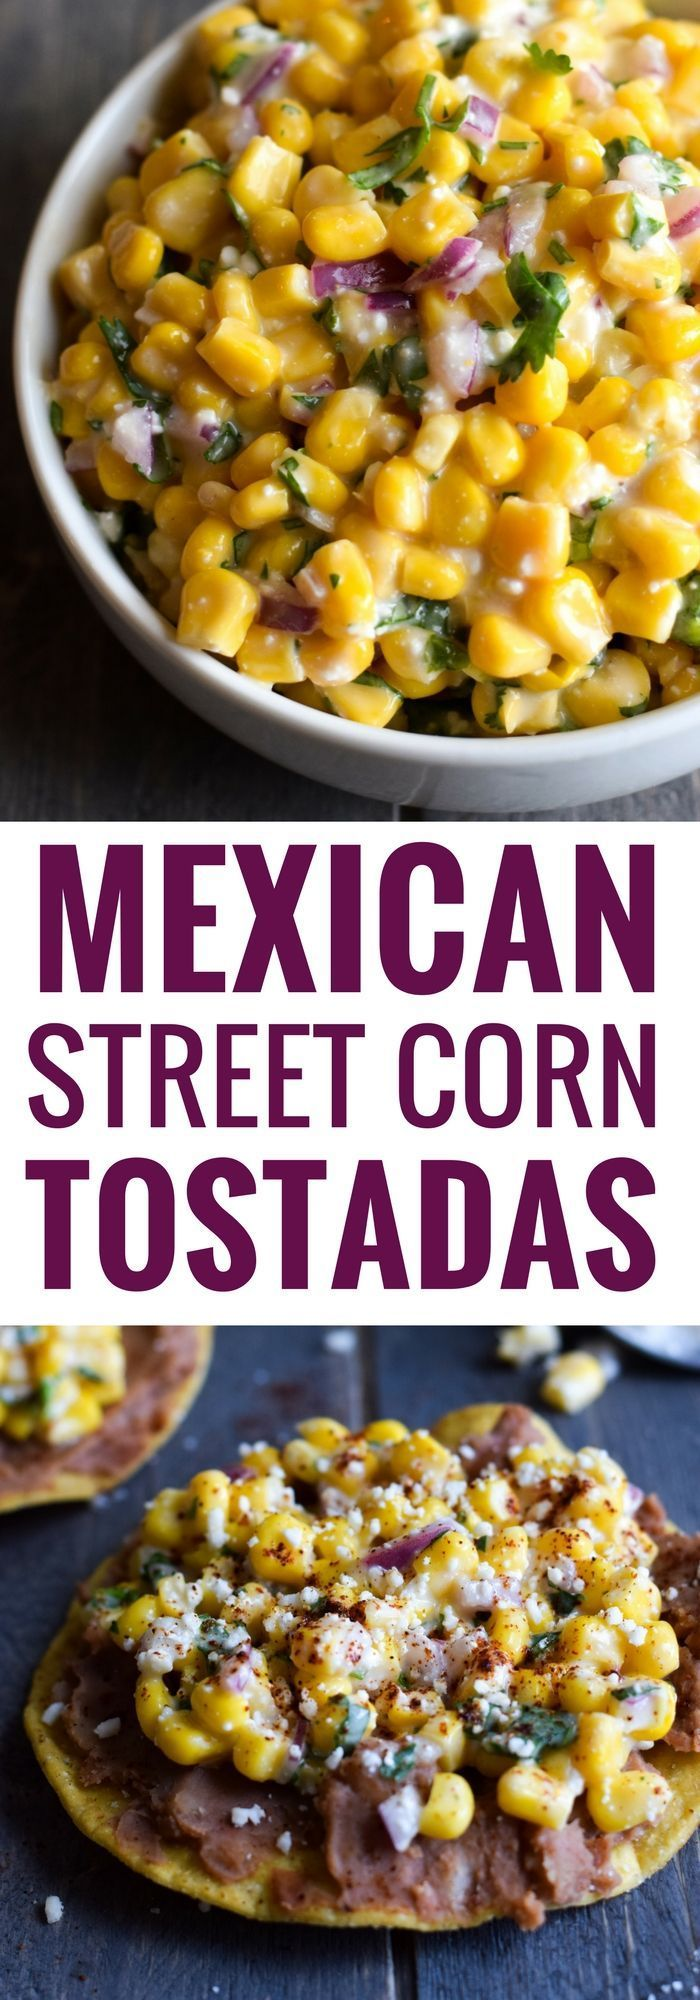 Photo of Mexican Street Corn Tostadas